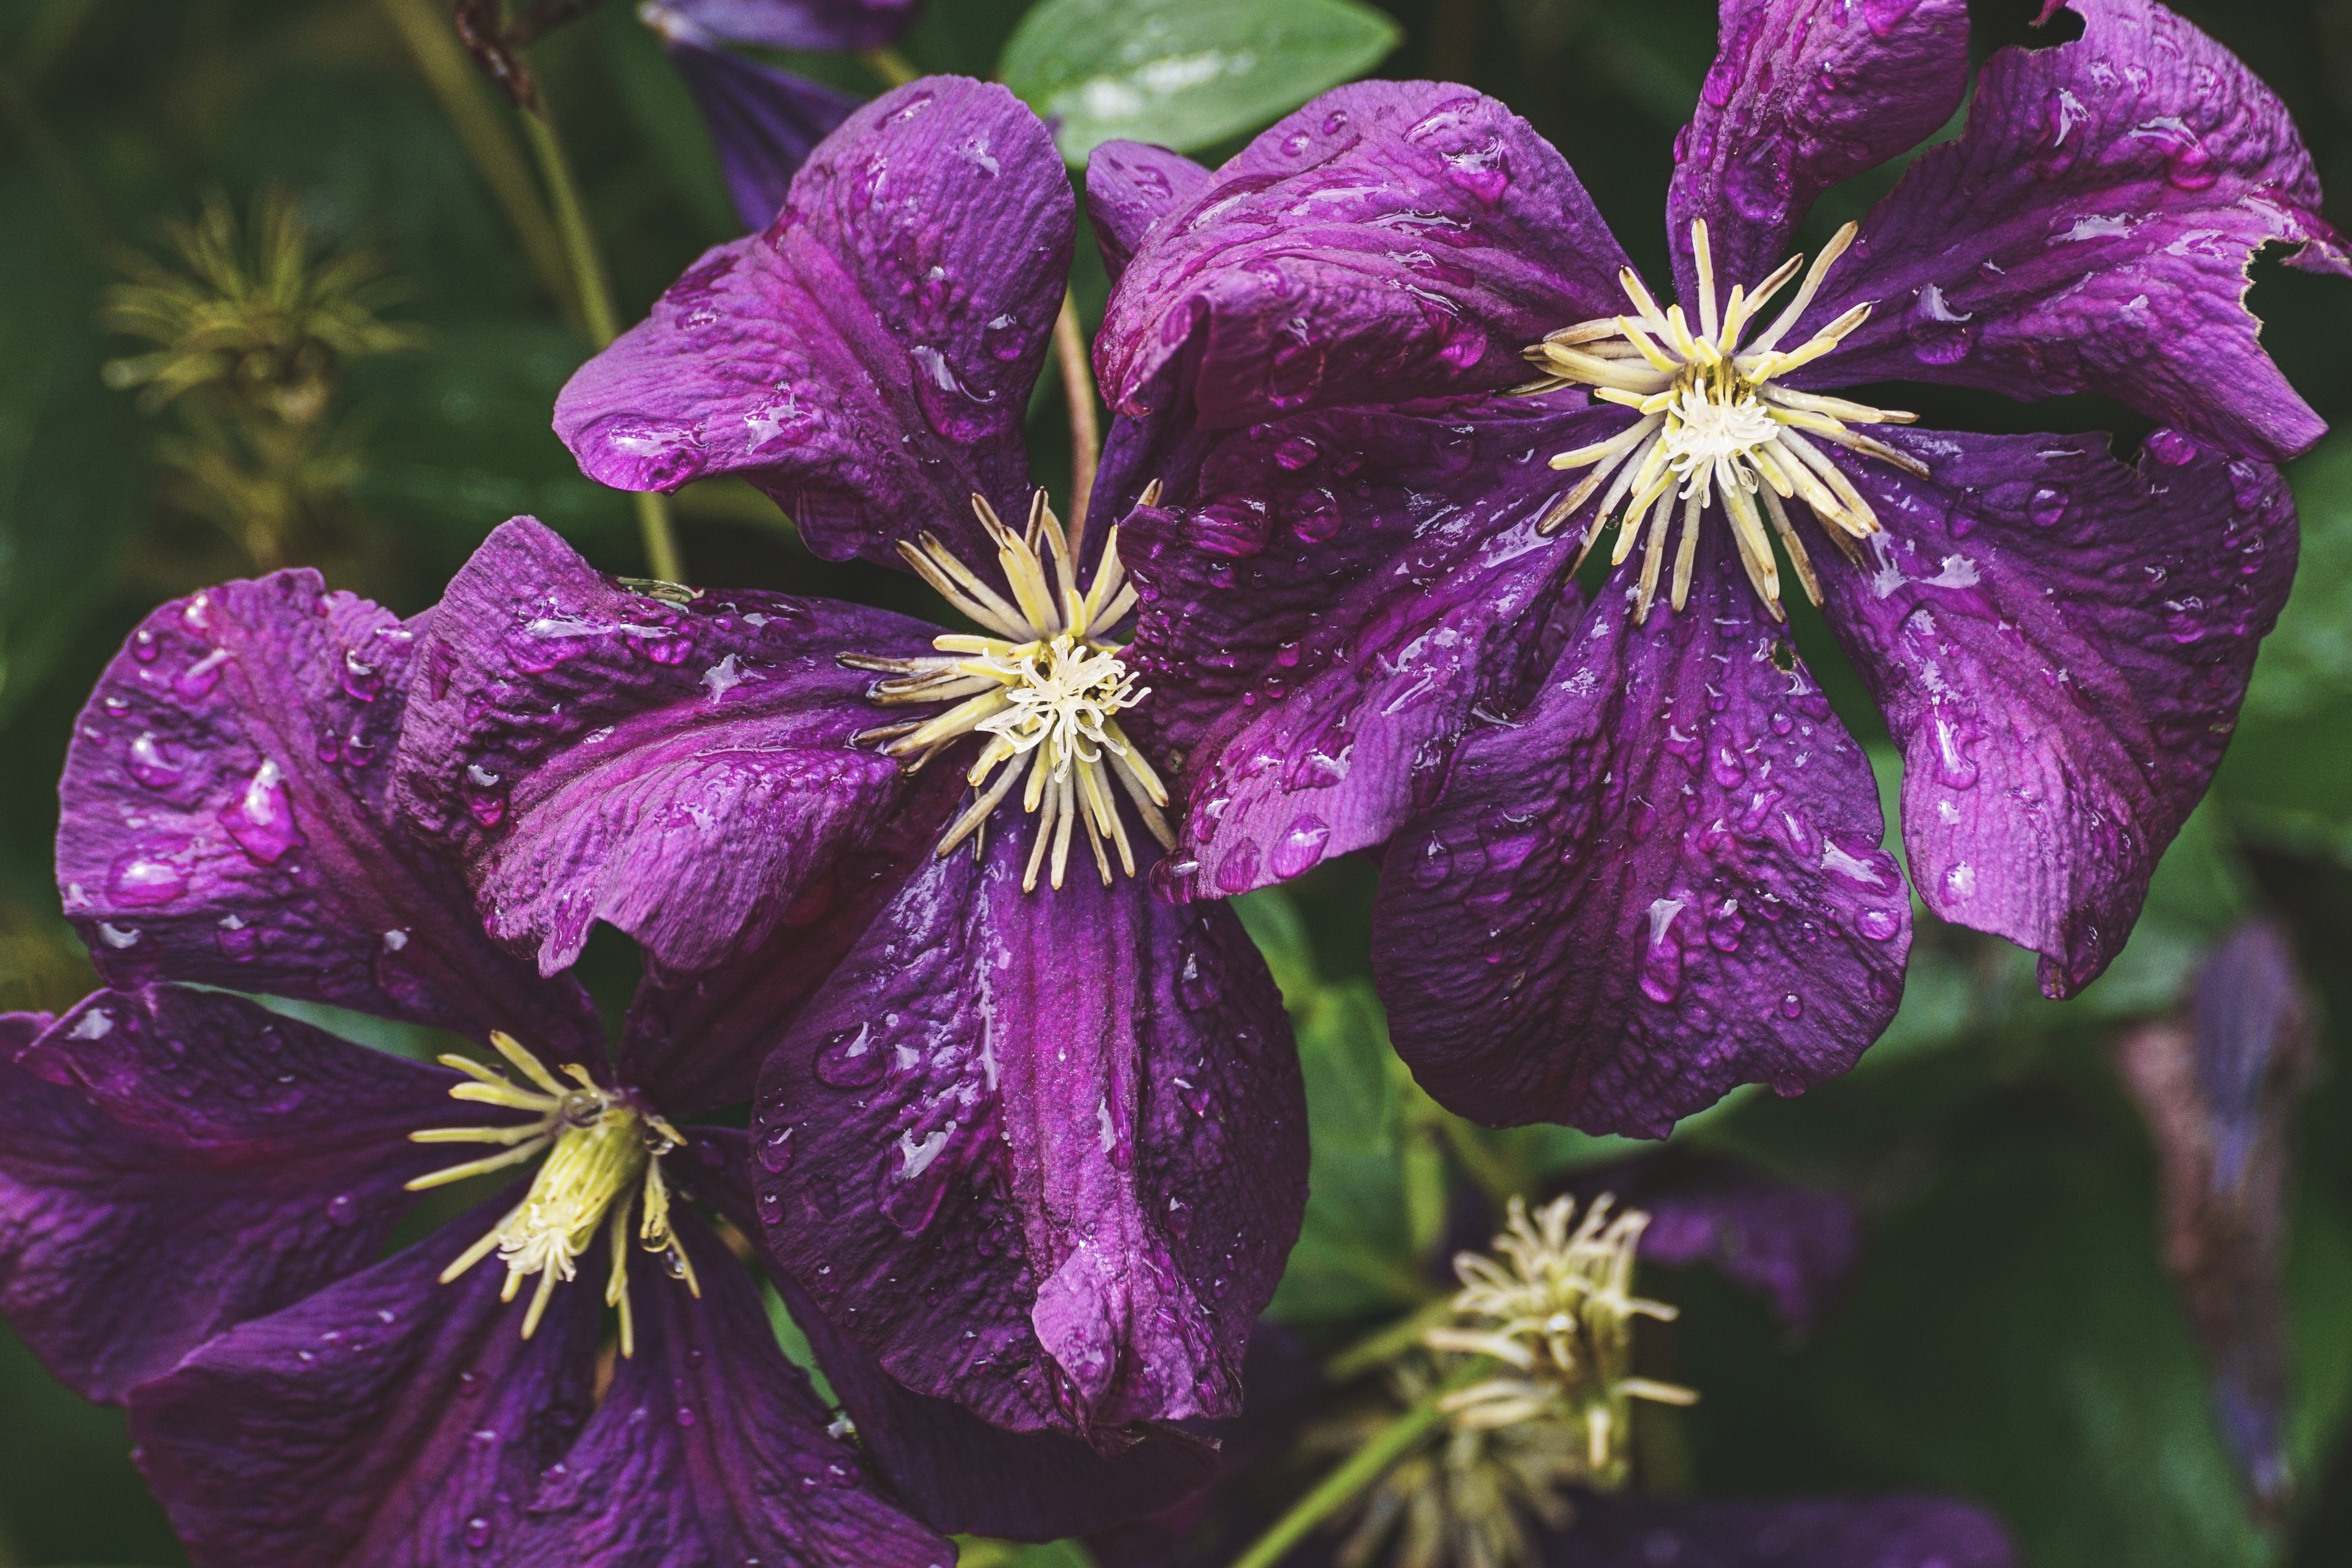 Closeup Photo of Purple Petaled Flowers